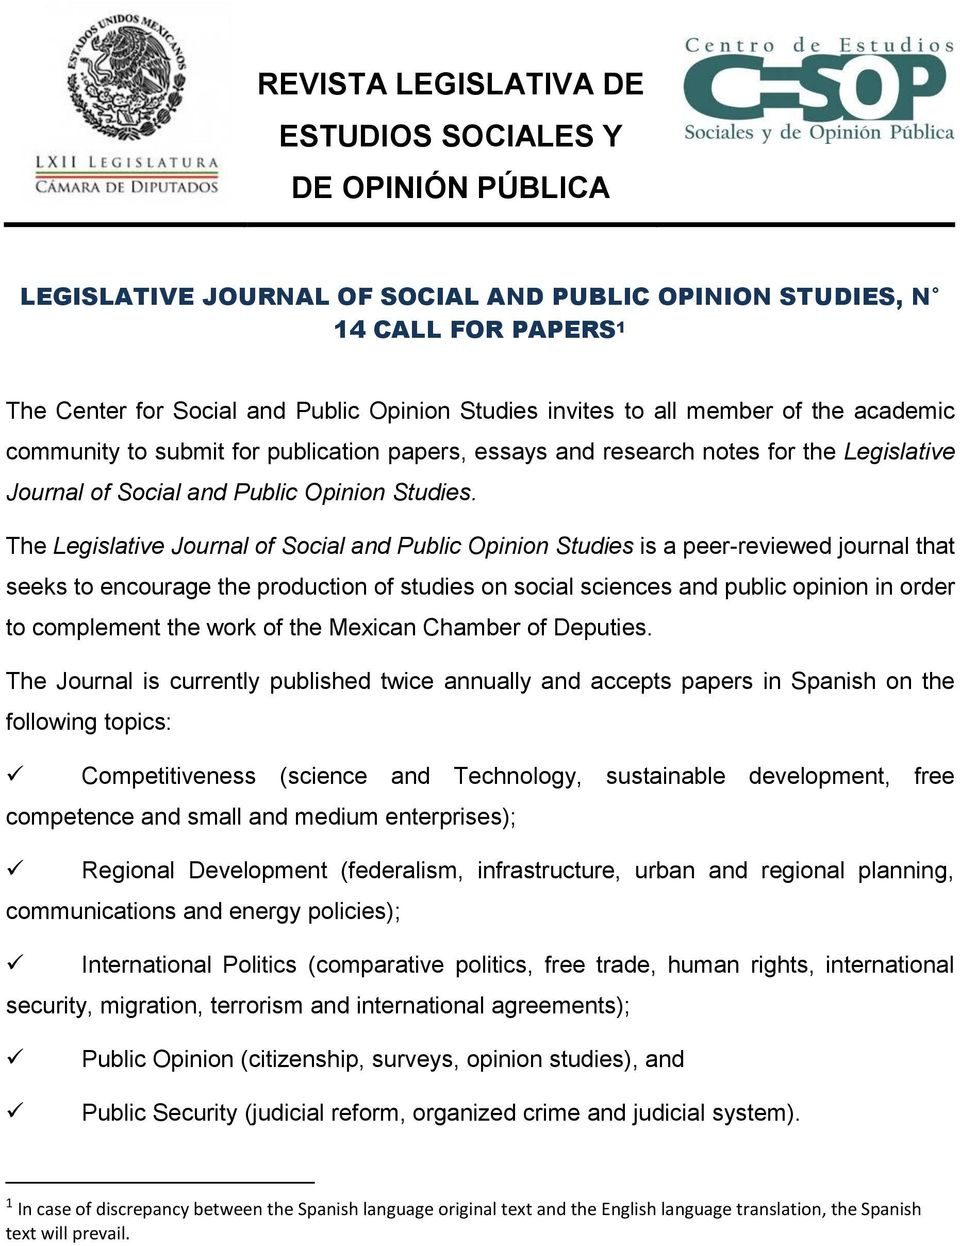 The Legislative Journal of Social and Public Opinion Studies is a peer-reviewed journal that seeks to encourage the production of studies on social sciences and public opinion in order to complement